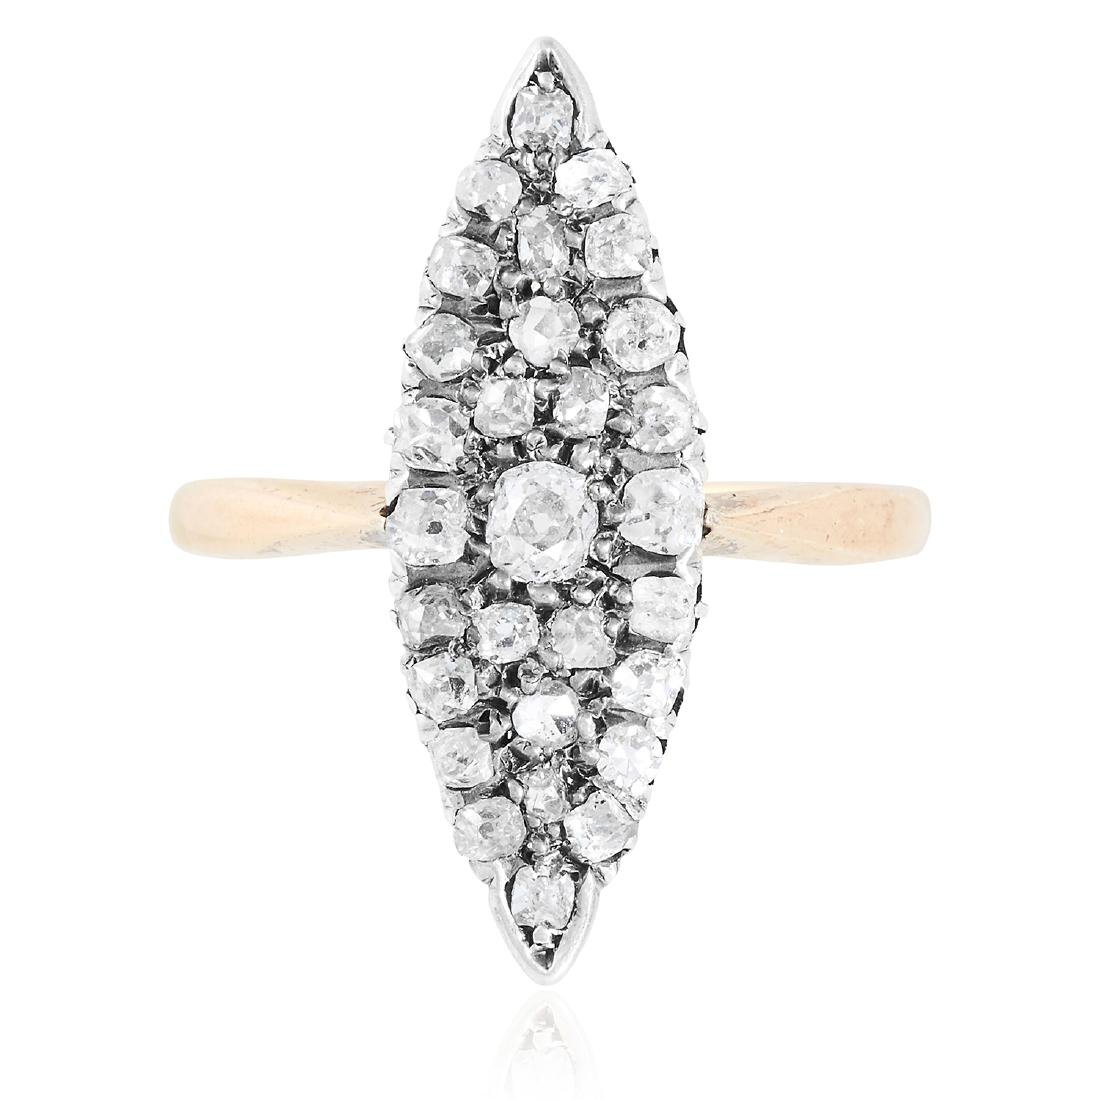 AN ANTIQUE DIAMOND DRESS RING in yellow gold, the